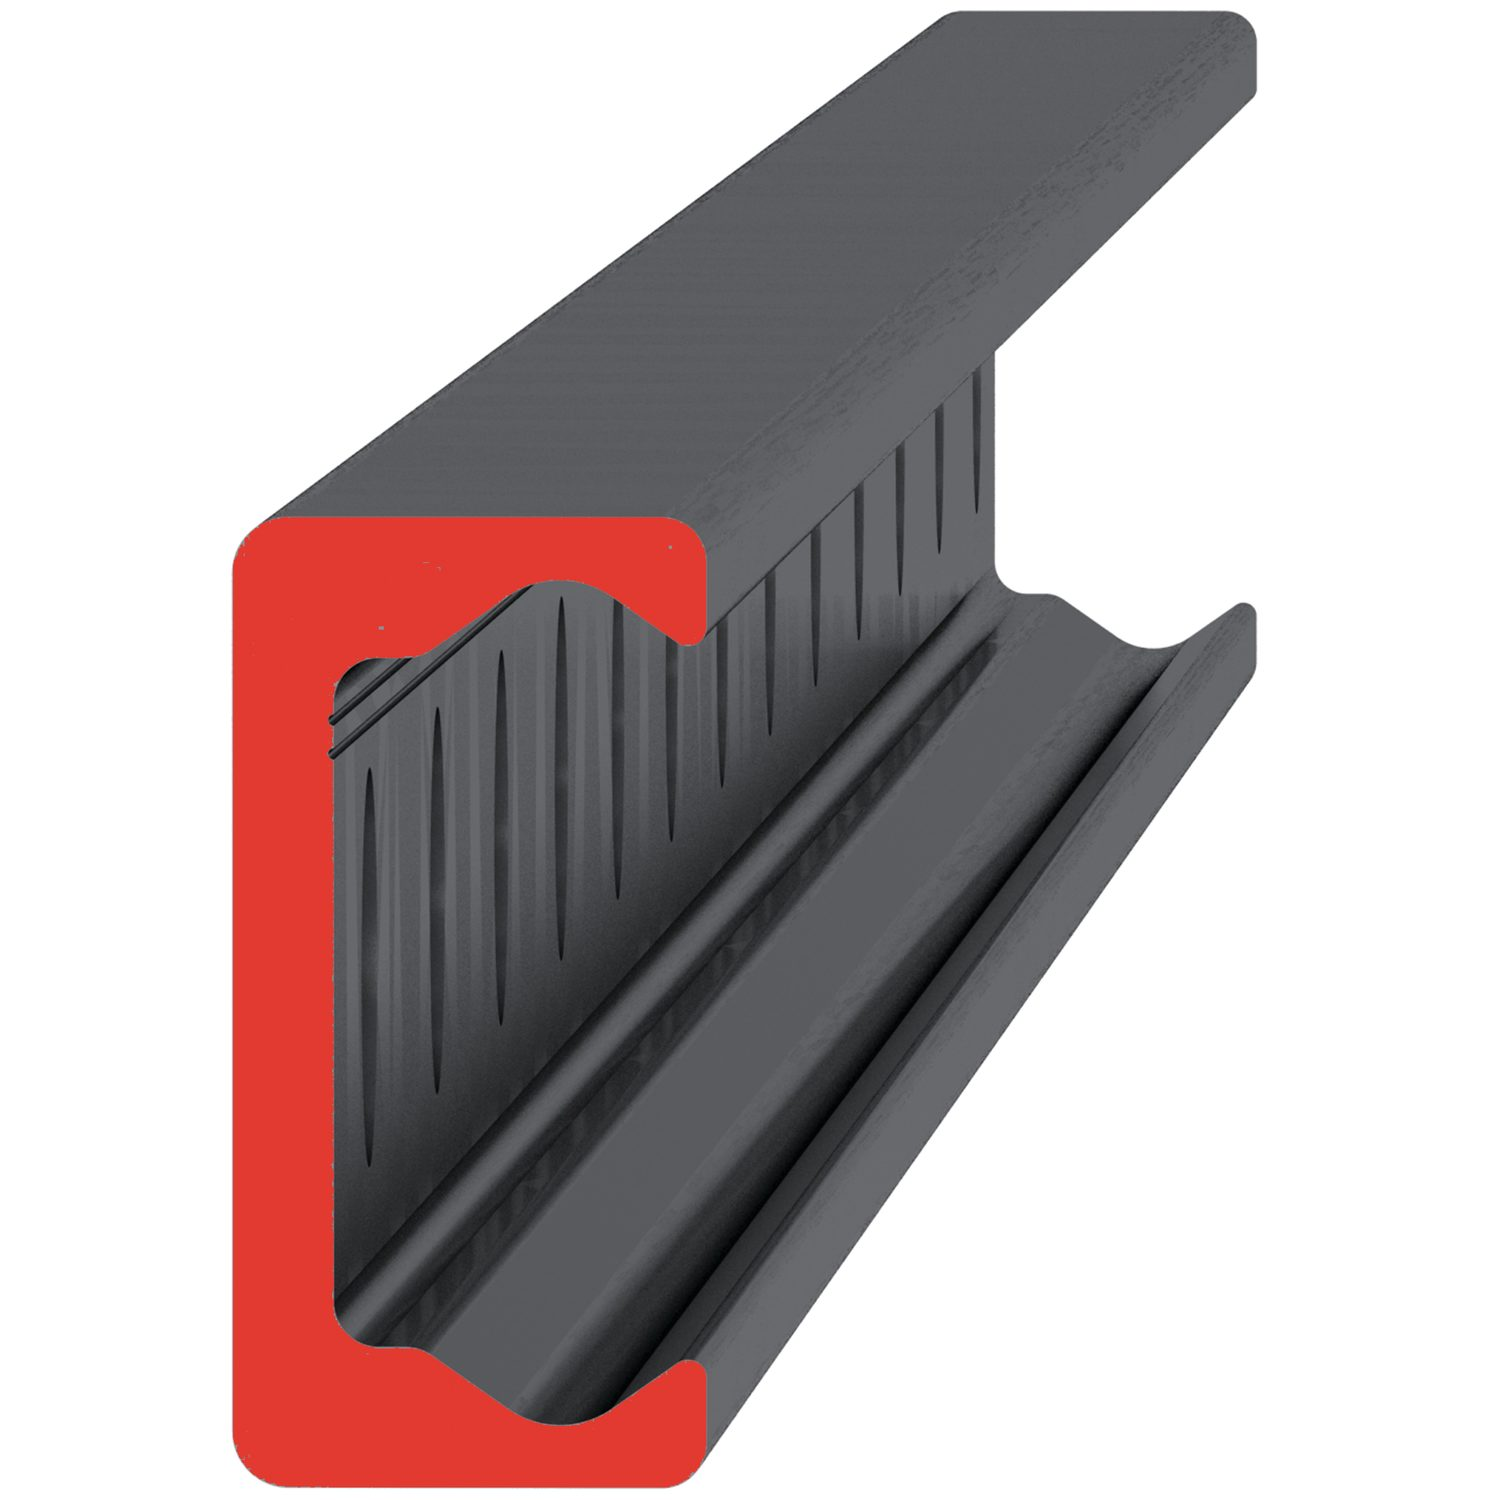 Product L1928.TL, Medium Duty T Rail countersunk holes /